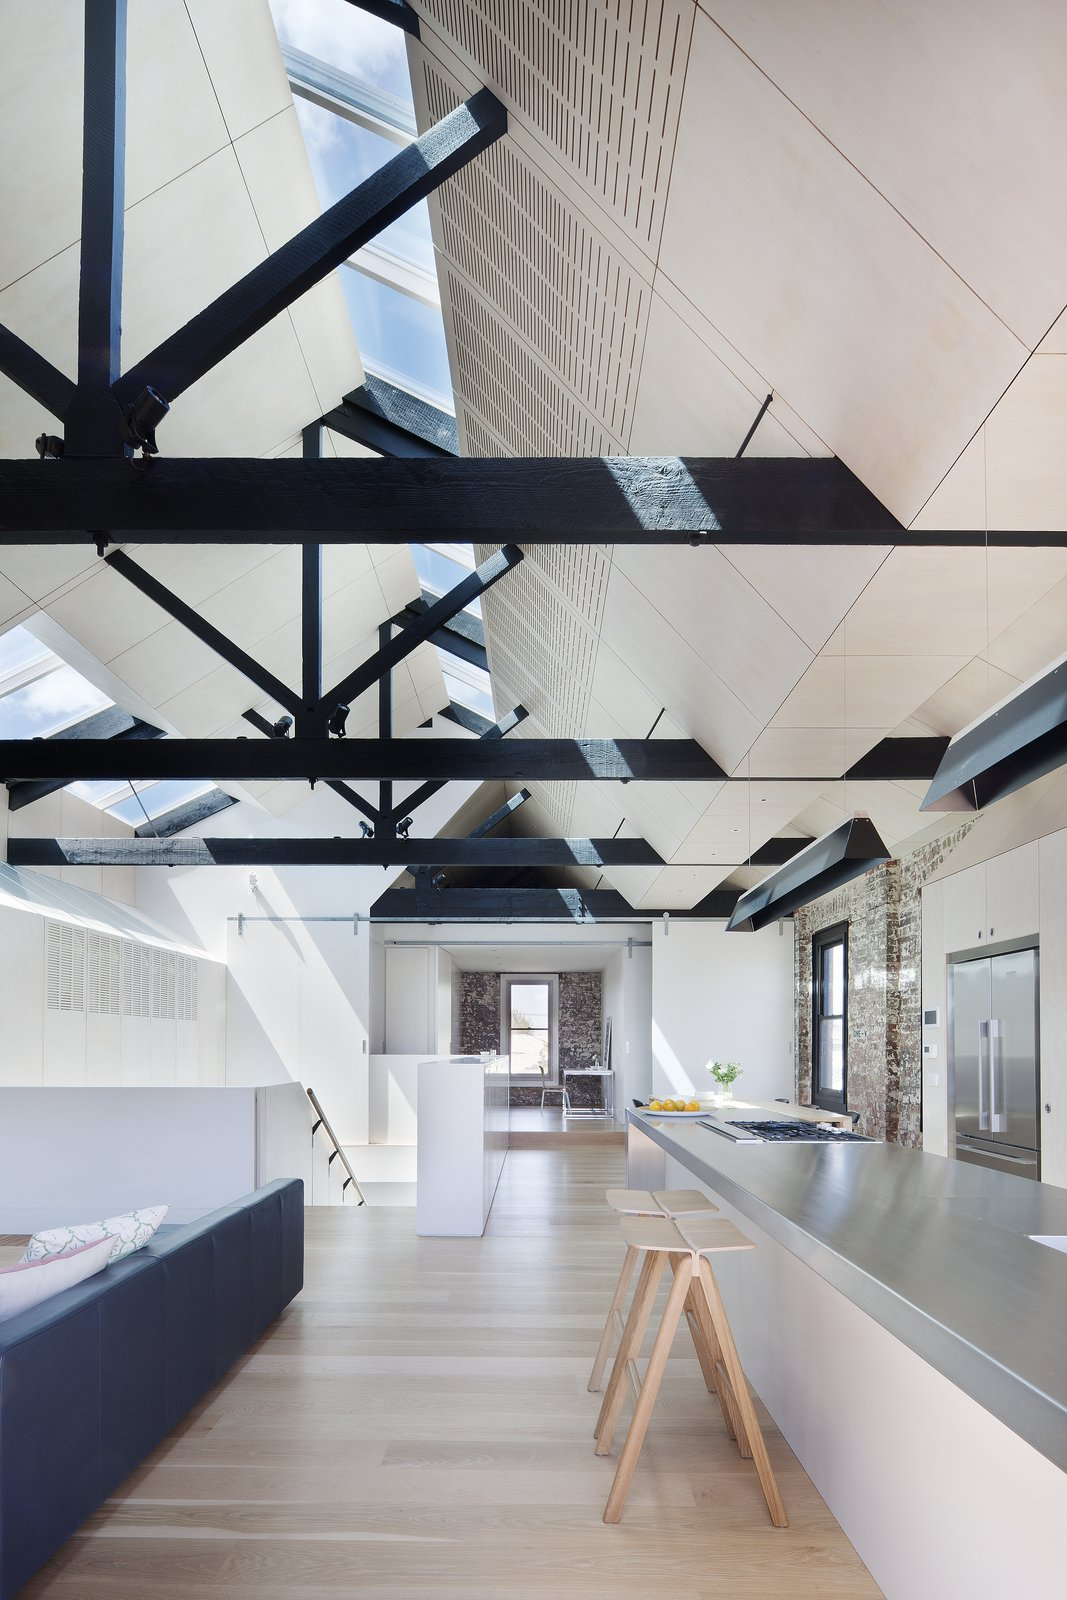 """The fact that the external walls were built to the site's boundary led to the solution of skylights as the one of the few means of introducing north light and good cross ventilation into the building,"" Simpson continues. The hanging lights are from Artemide while the hotplates and cooktops are from Barazza.  Water Factory by Kelly Dawson"